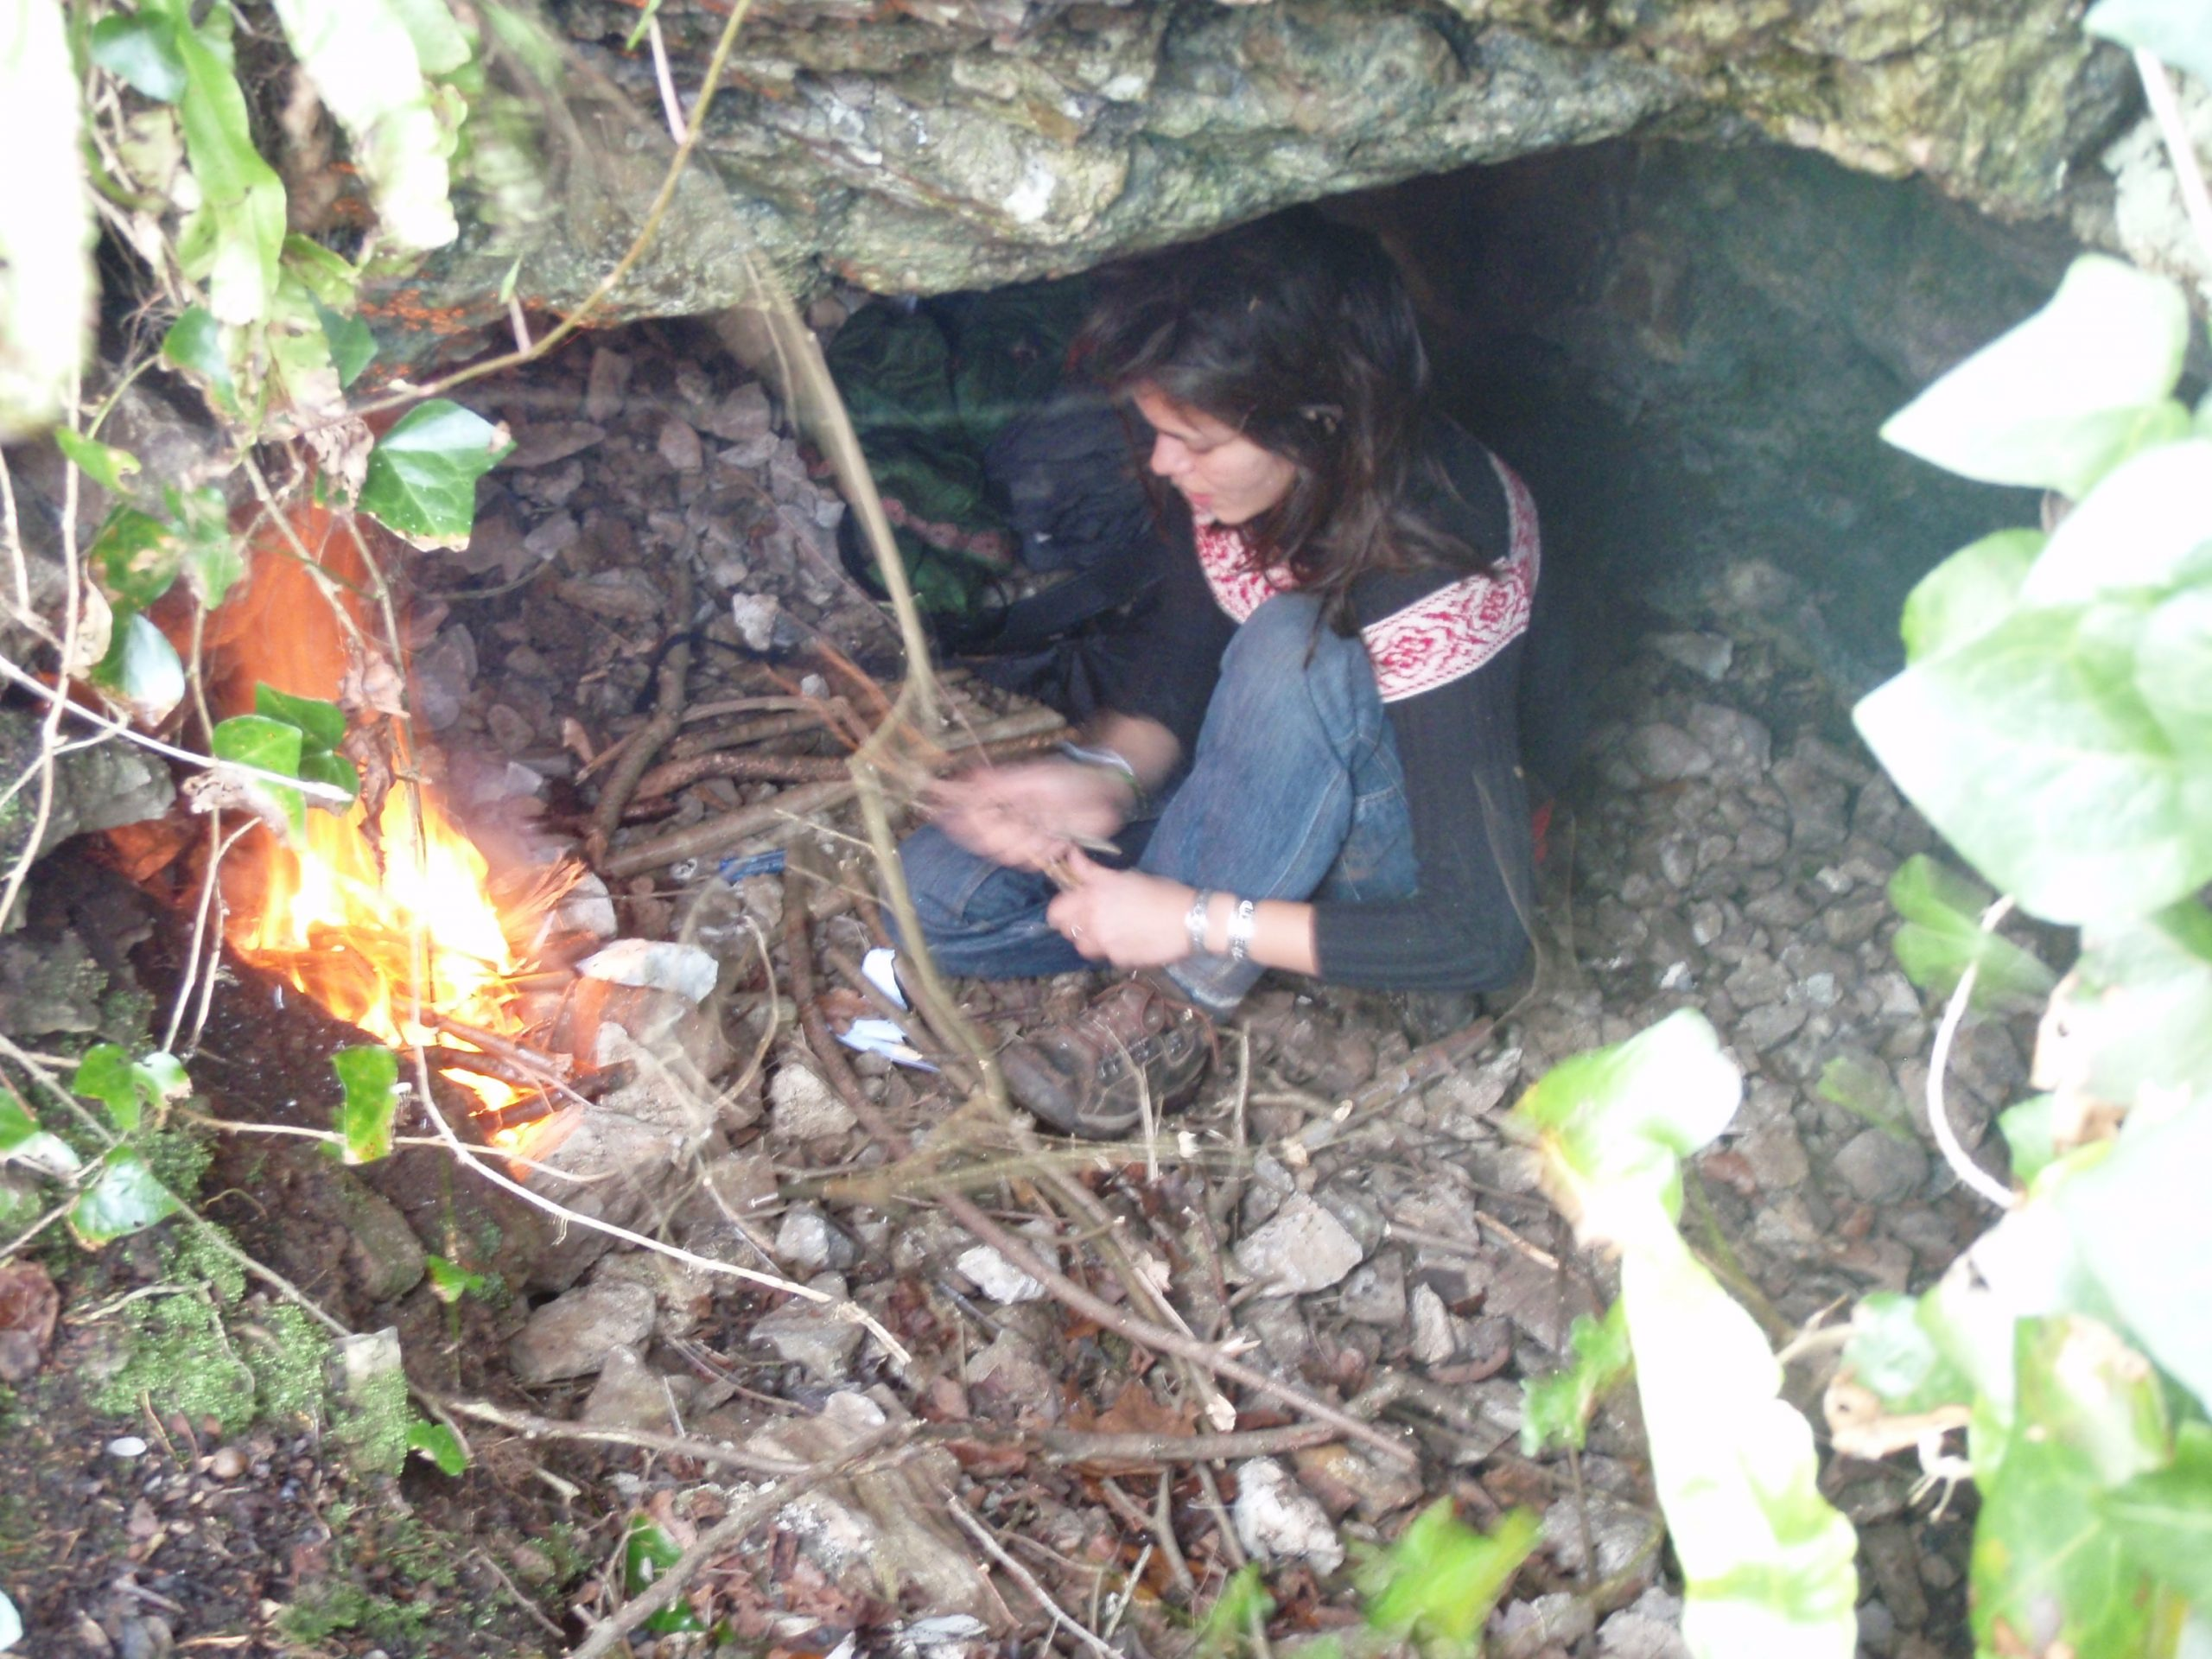 Finding Shelter in the Wilderness - Cave